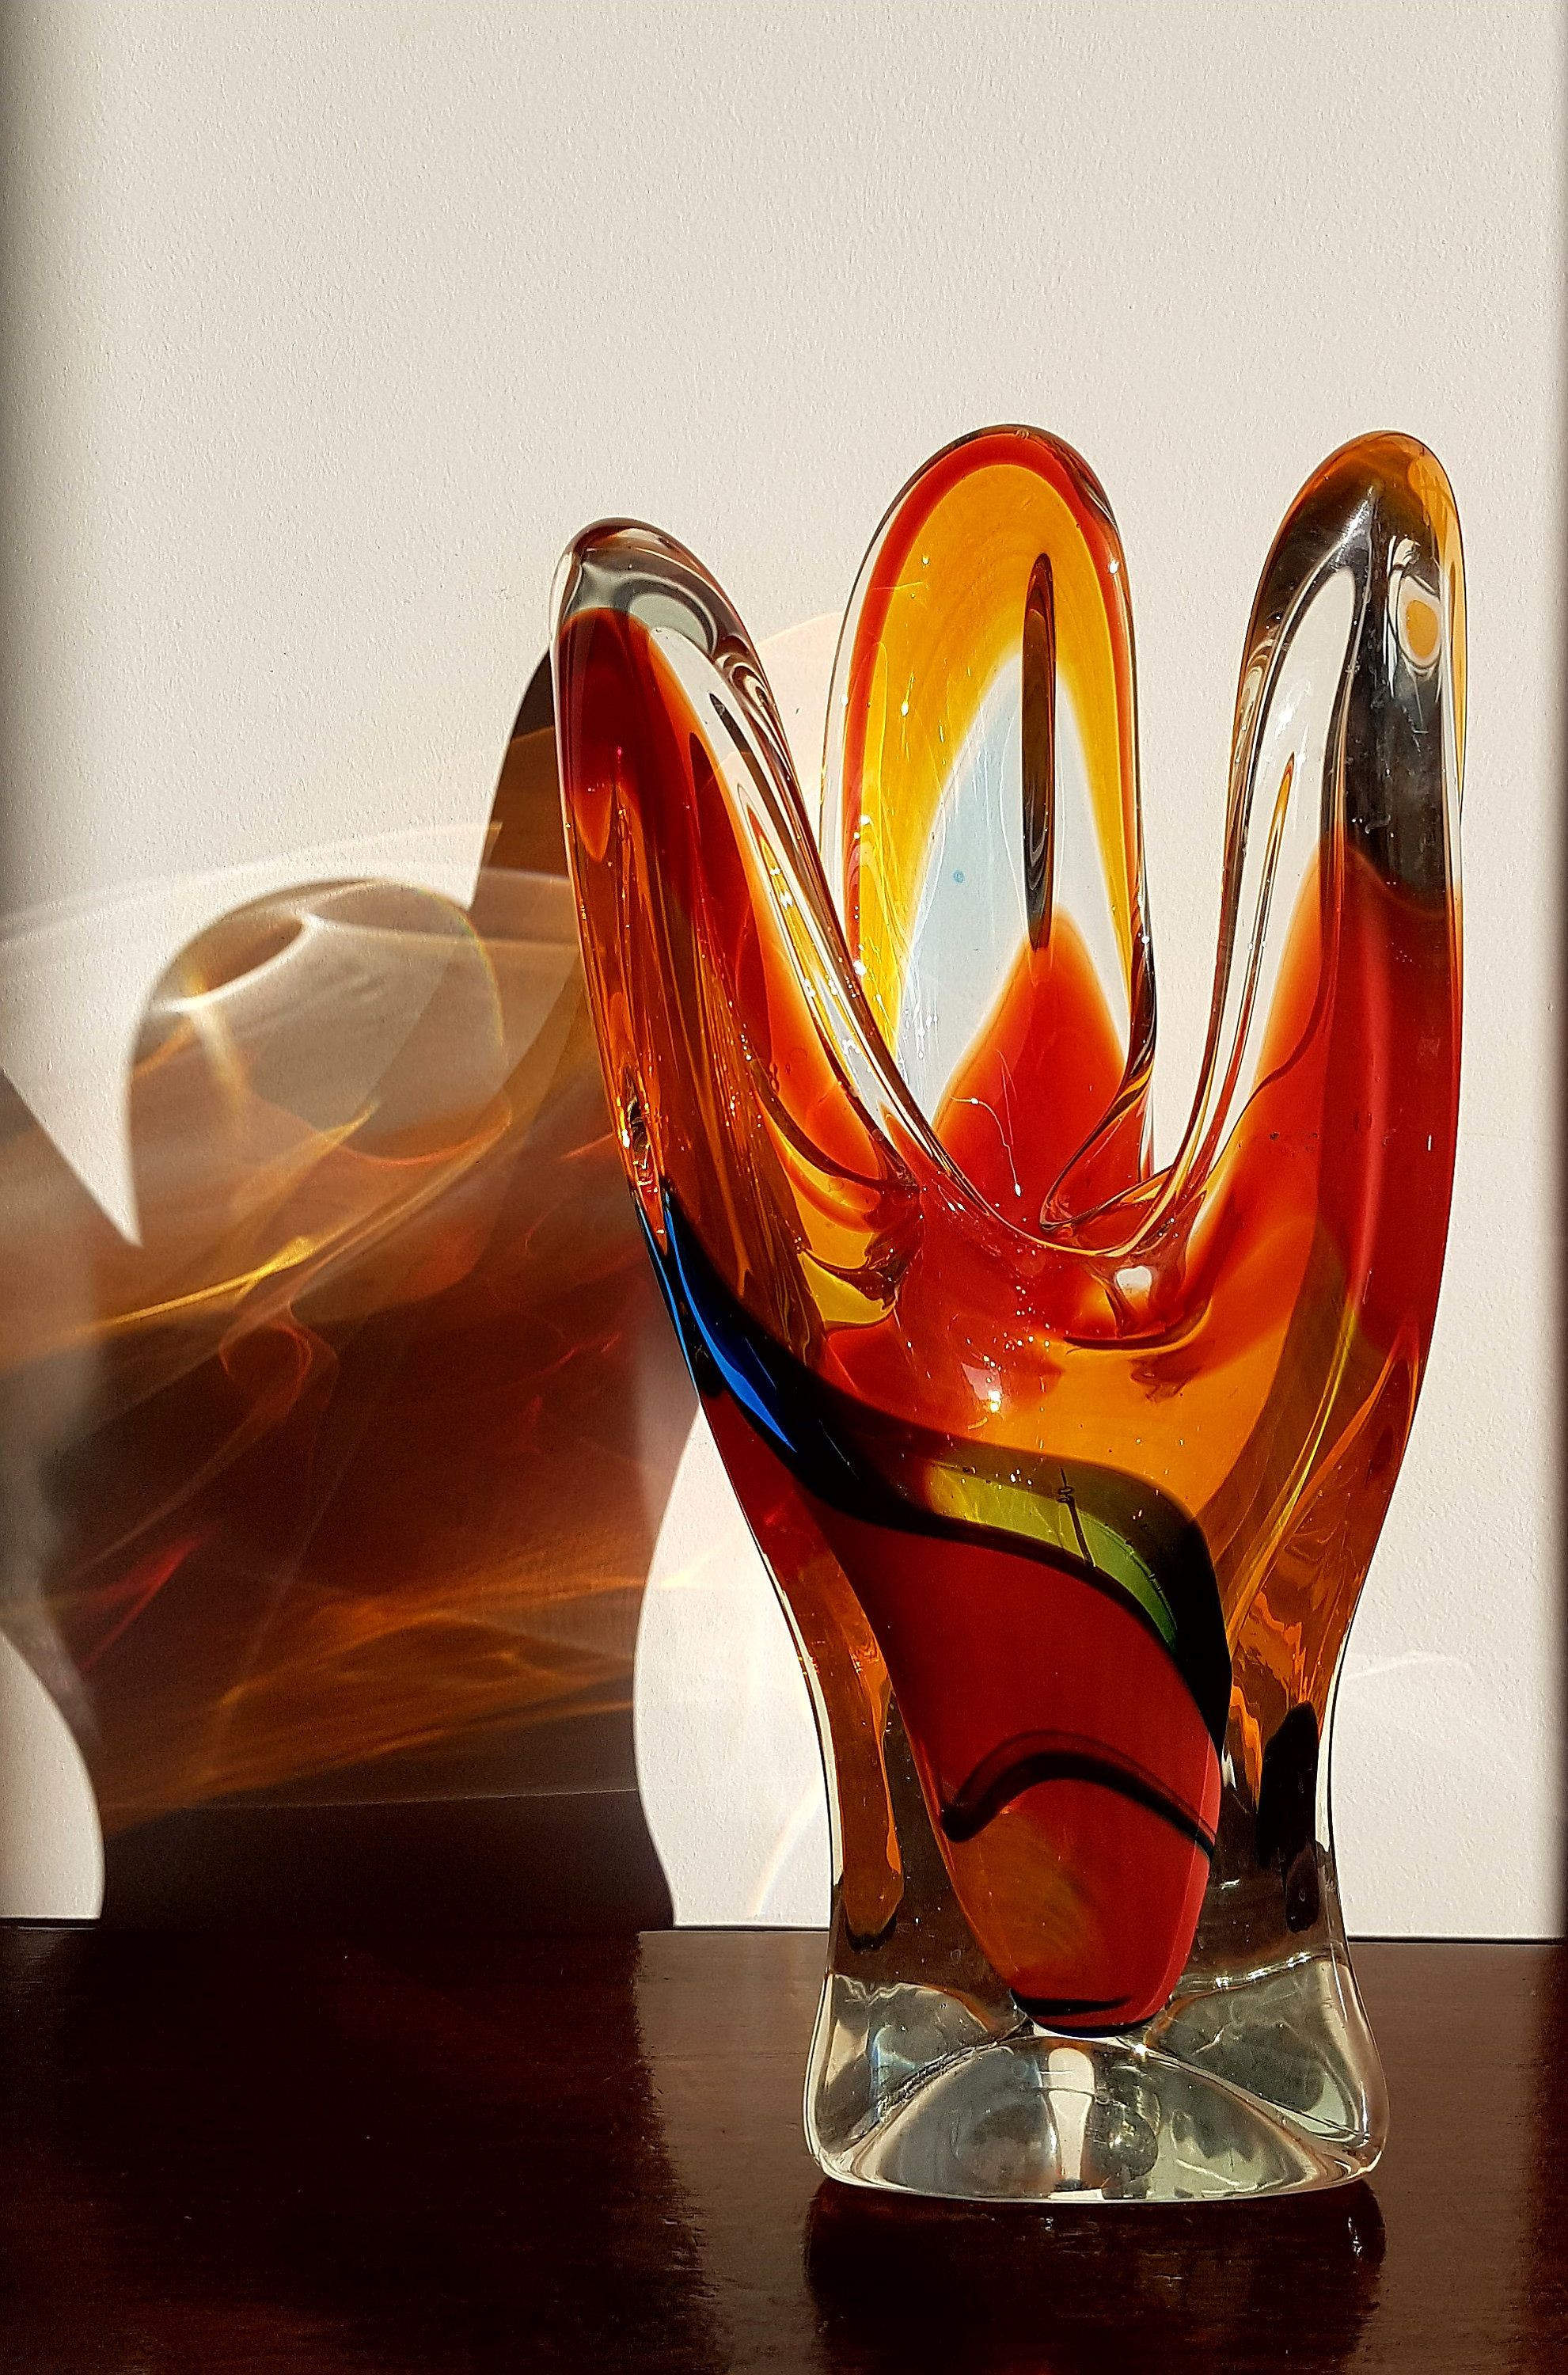 red glass vase vintage of pin by steven wolff on transparent glass sculptures in 2018 in pin by steven wolff on transparent glass sculptures in 2018 pinterest vintage japanese and japanese